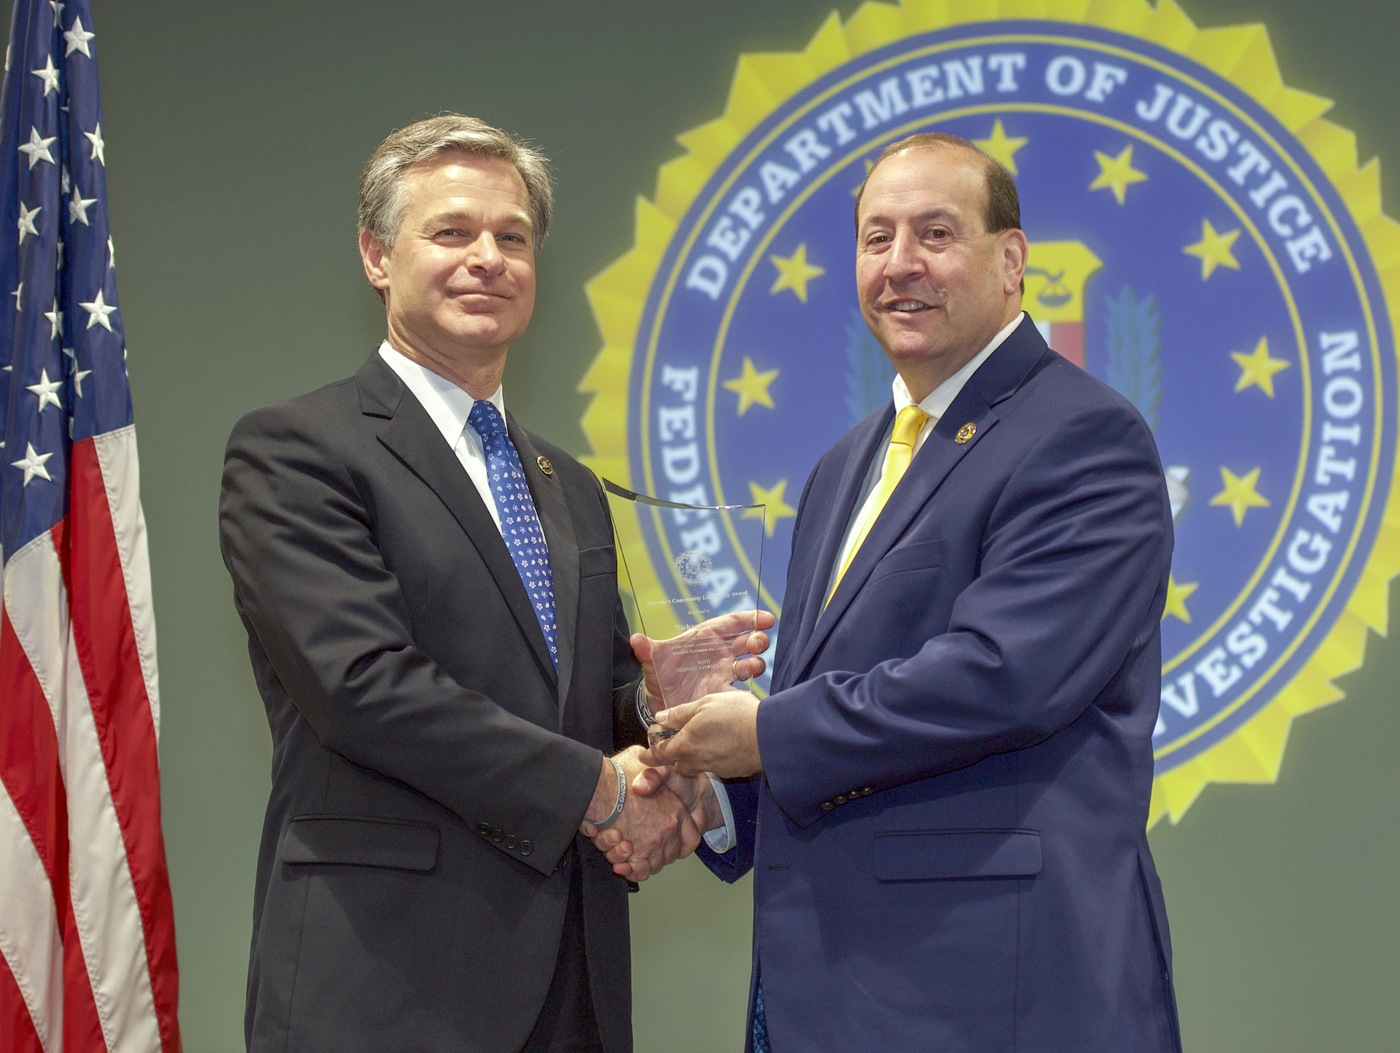 FBI Director Christopher Wray presents San Antonio Division recipient Richard Miller with the Director's Community Leadership Award (DCLA) at a ceremony at FBI Headquarters on May 3, 2019.